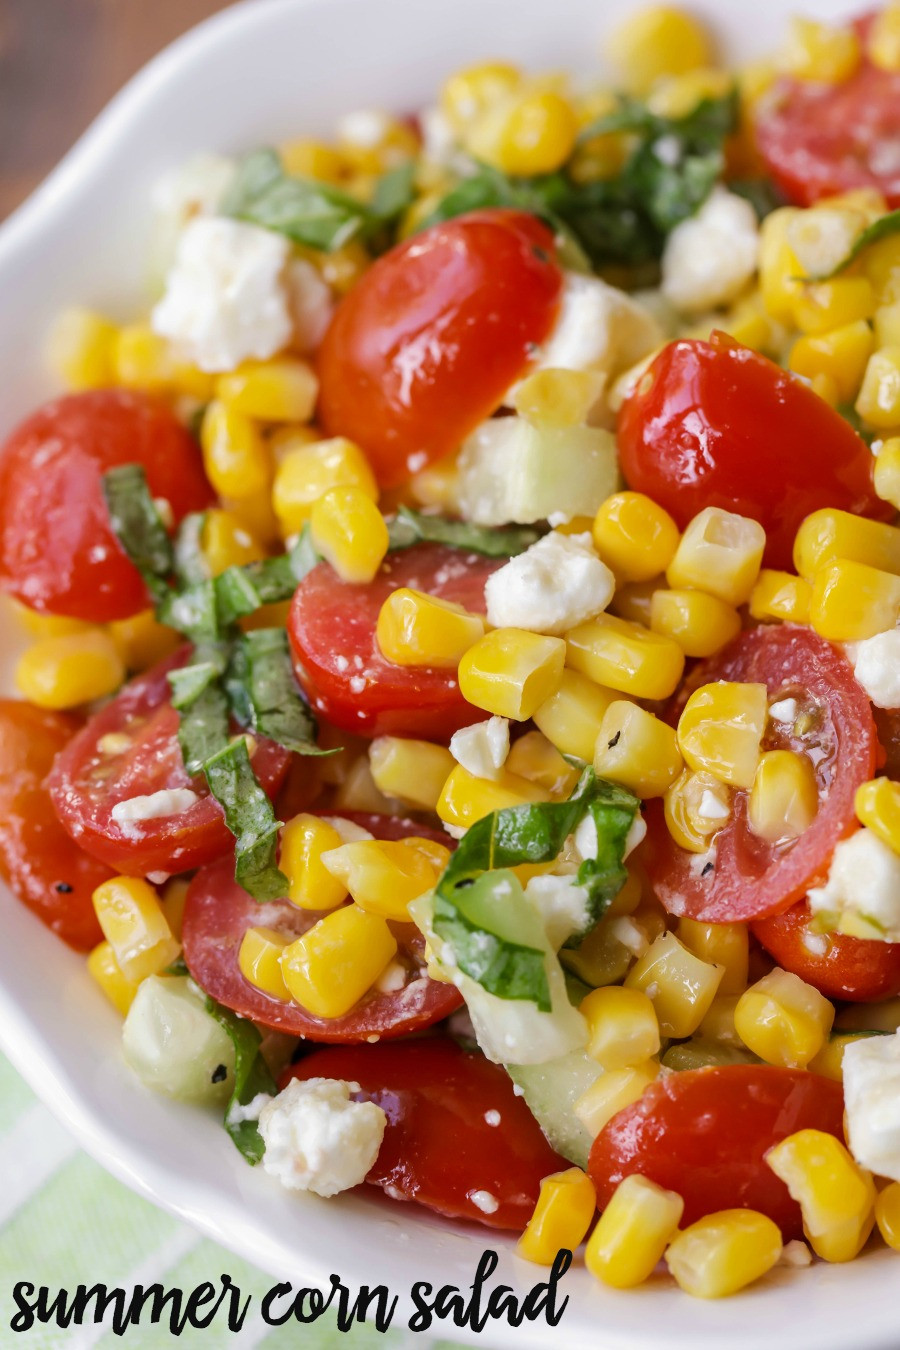 Summer Corn Salad  Summer Corn Salad recipe